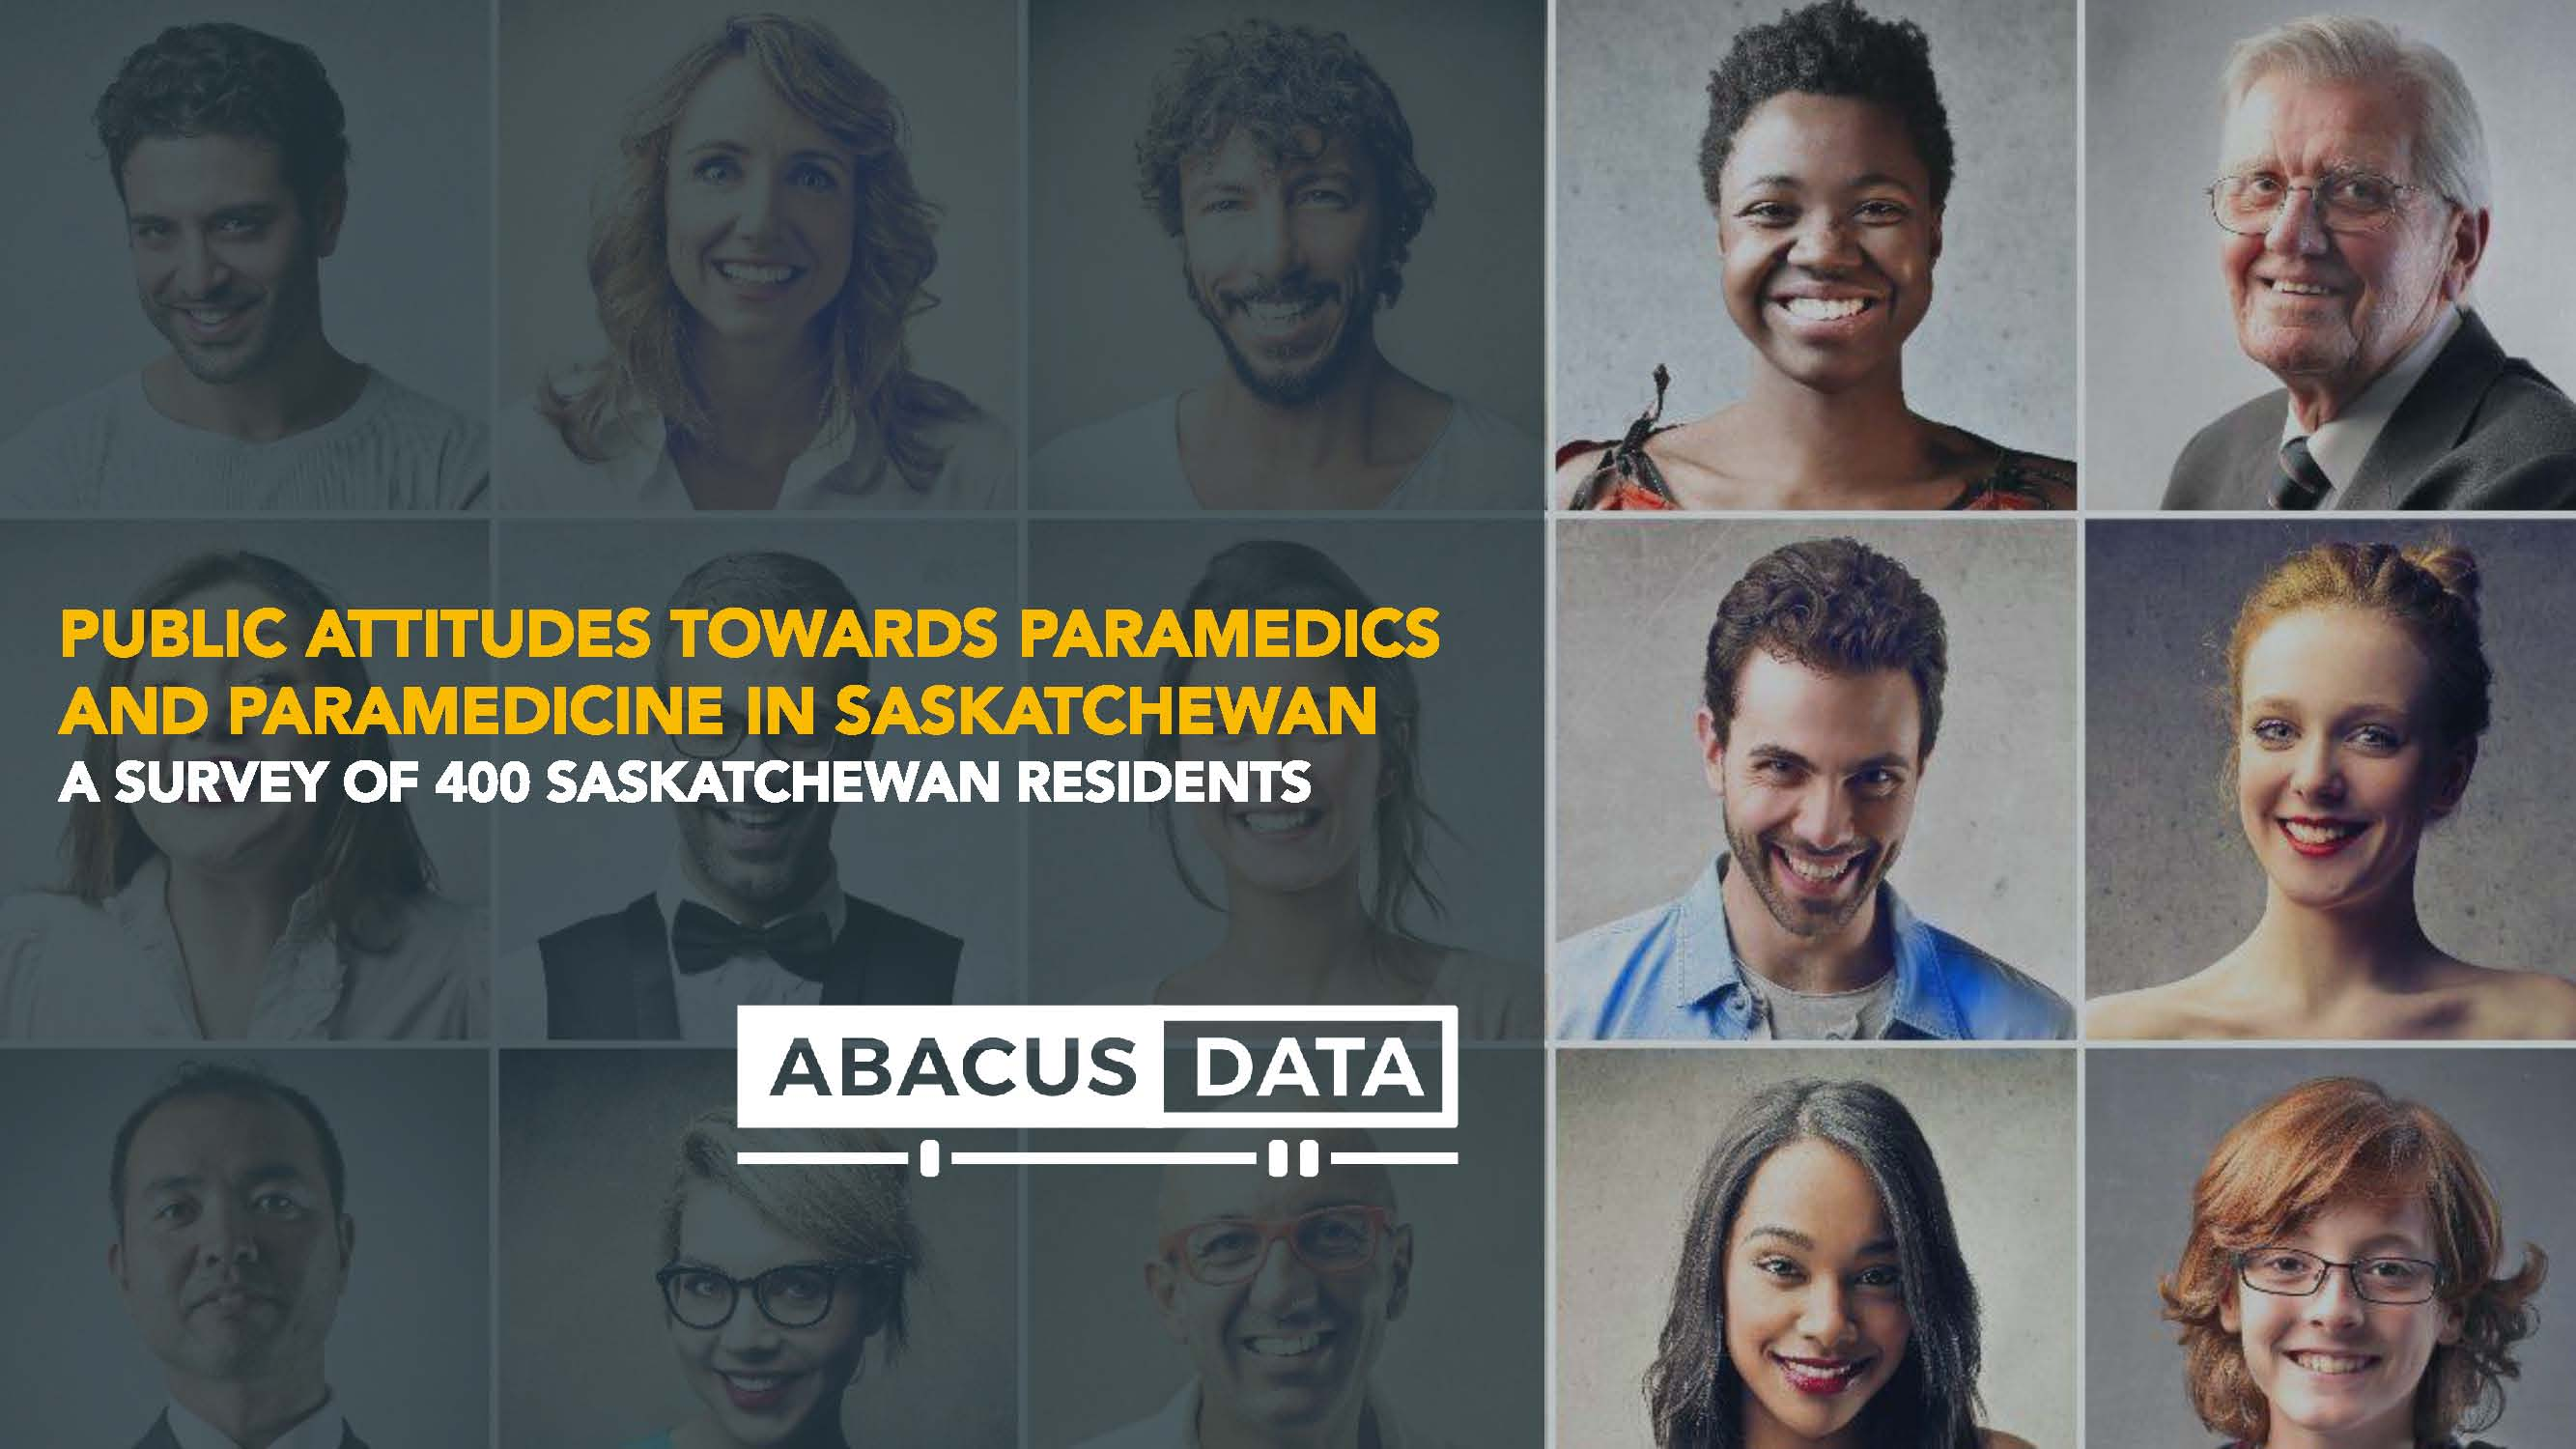 Paramedics and Paramedicine in Saskatchewan 2018